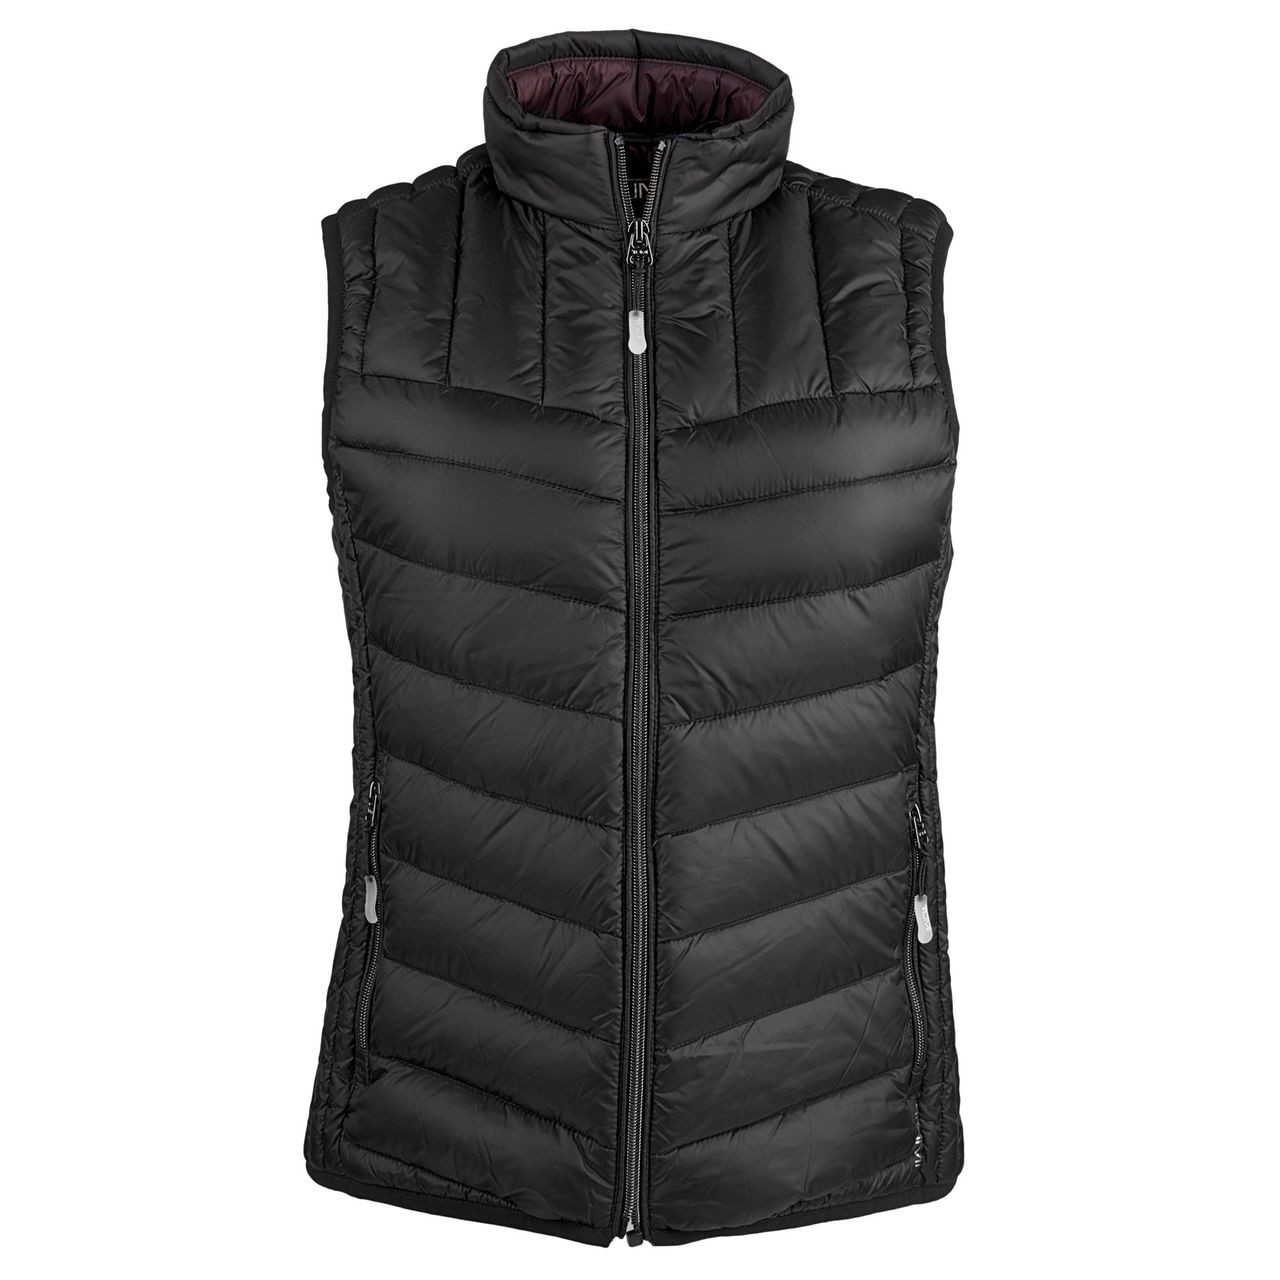 Warm, windproof, water-resistant—the updated Women's Nano Puff® Vest uses warm, lightweight and highly compressible g PrimaLoft® Gold Insulation Eco.